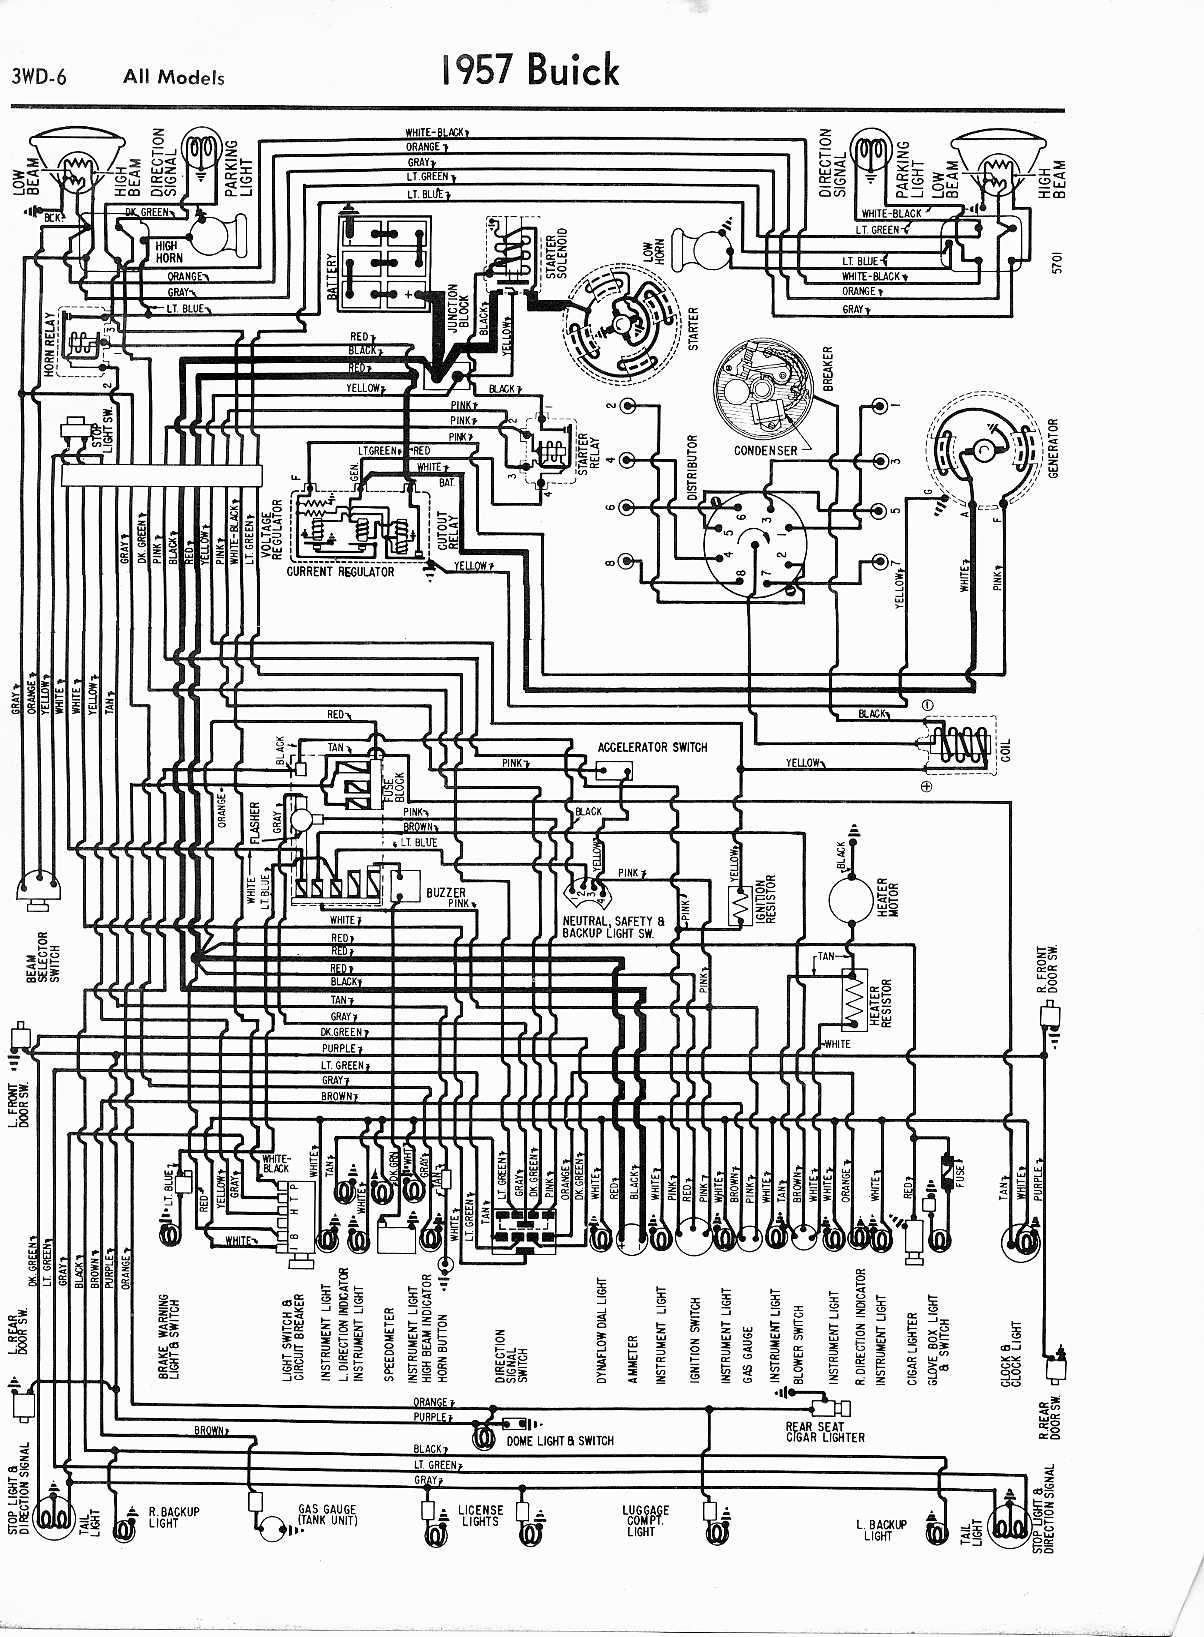 hight resolution of free buick wiring diagram layout wiring diagrams u2022 rh laurafinlay co uk 2005 buick rendezvous radio